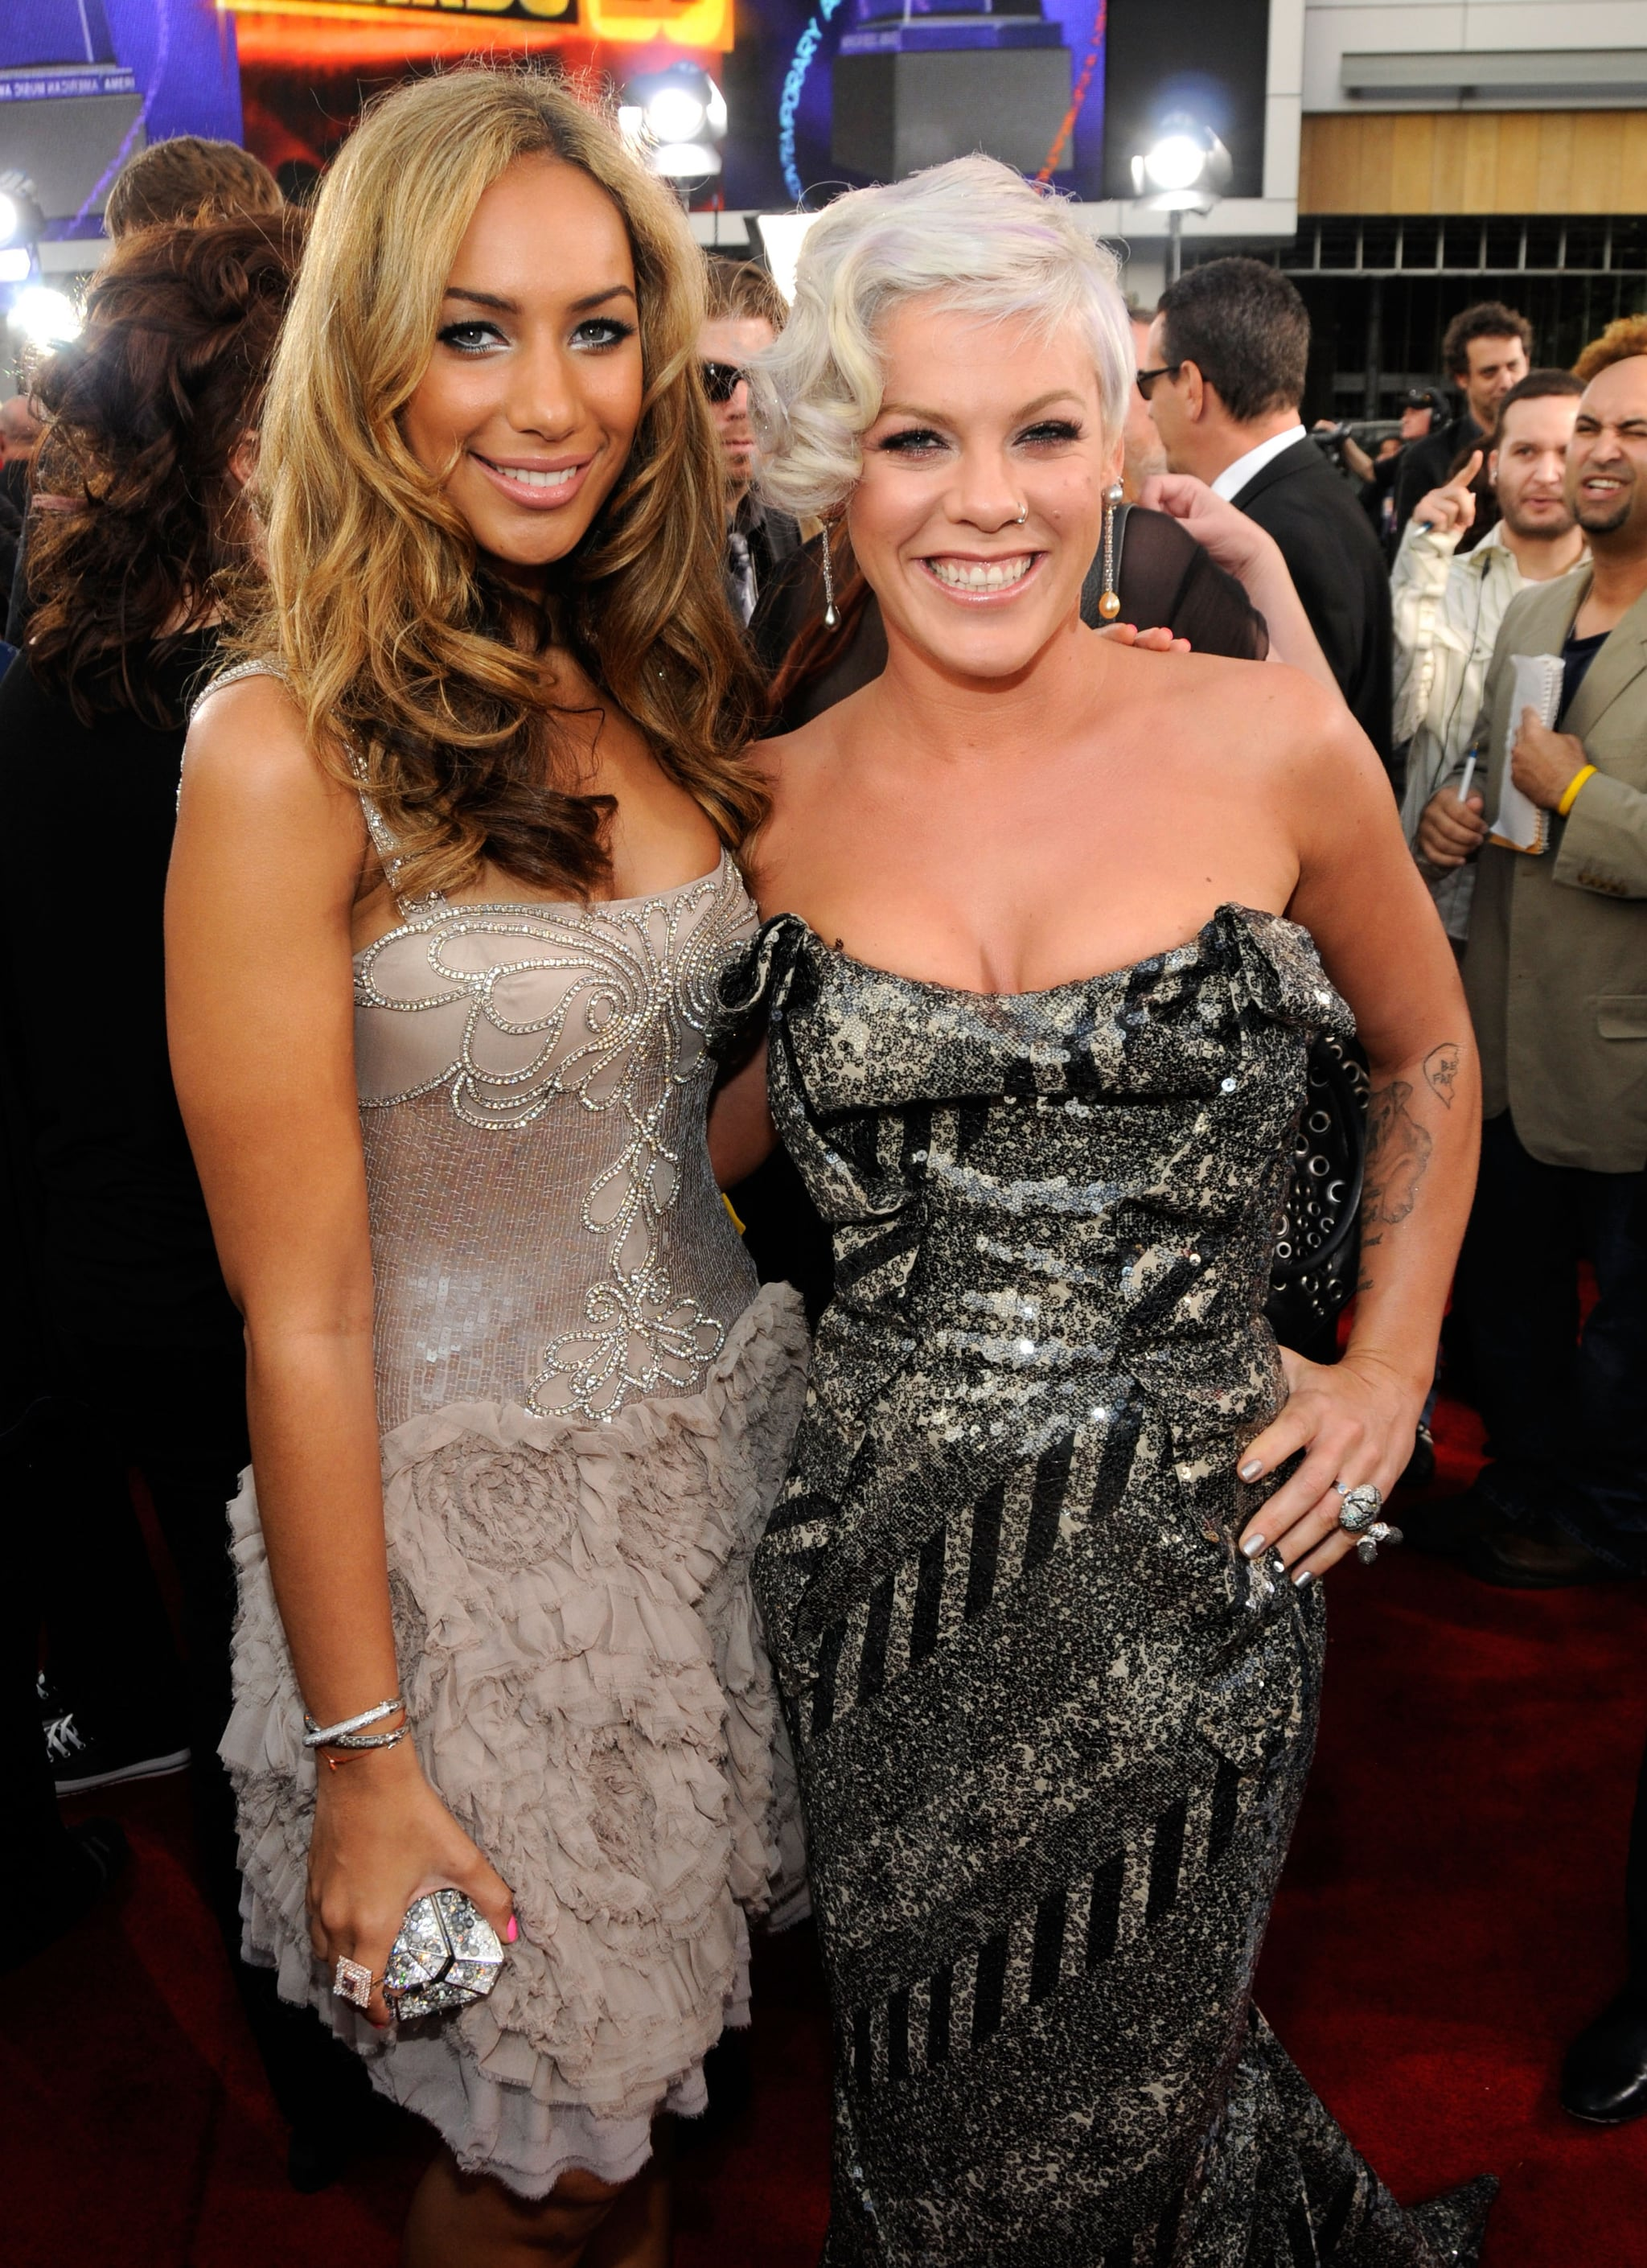 Leona Lewis and Pink hit the red carpet together in 2008.